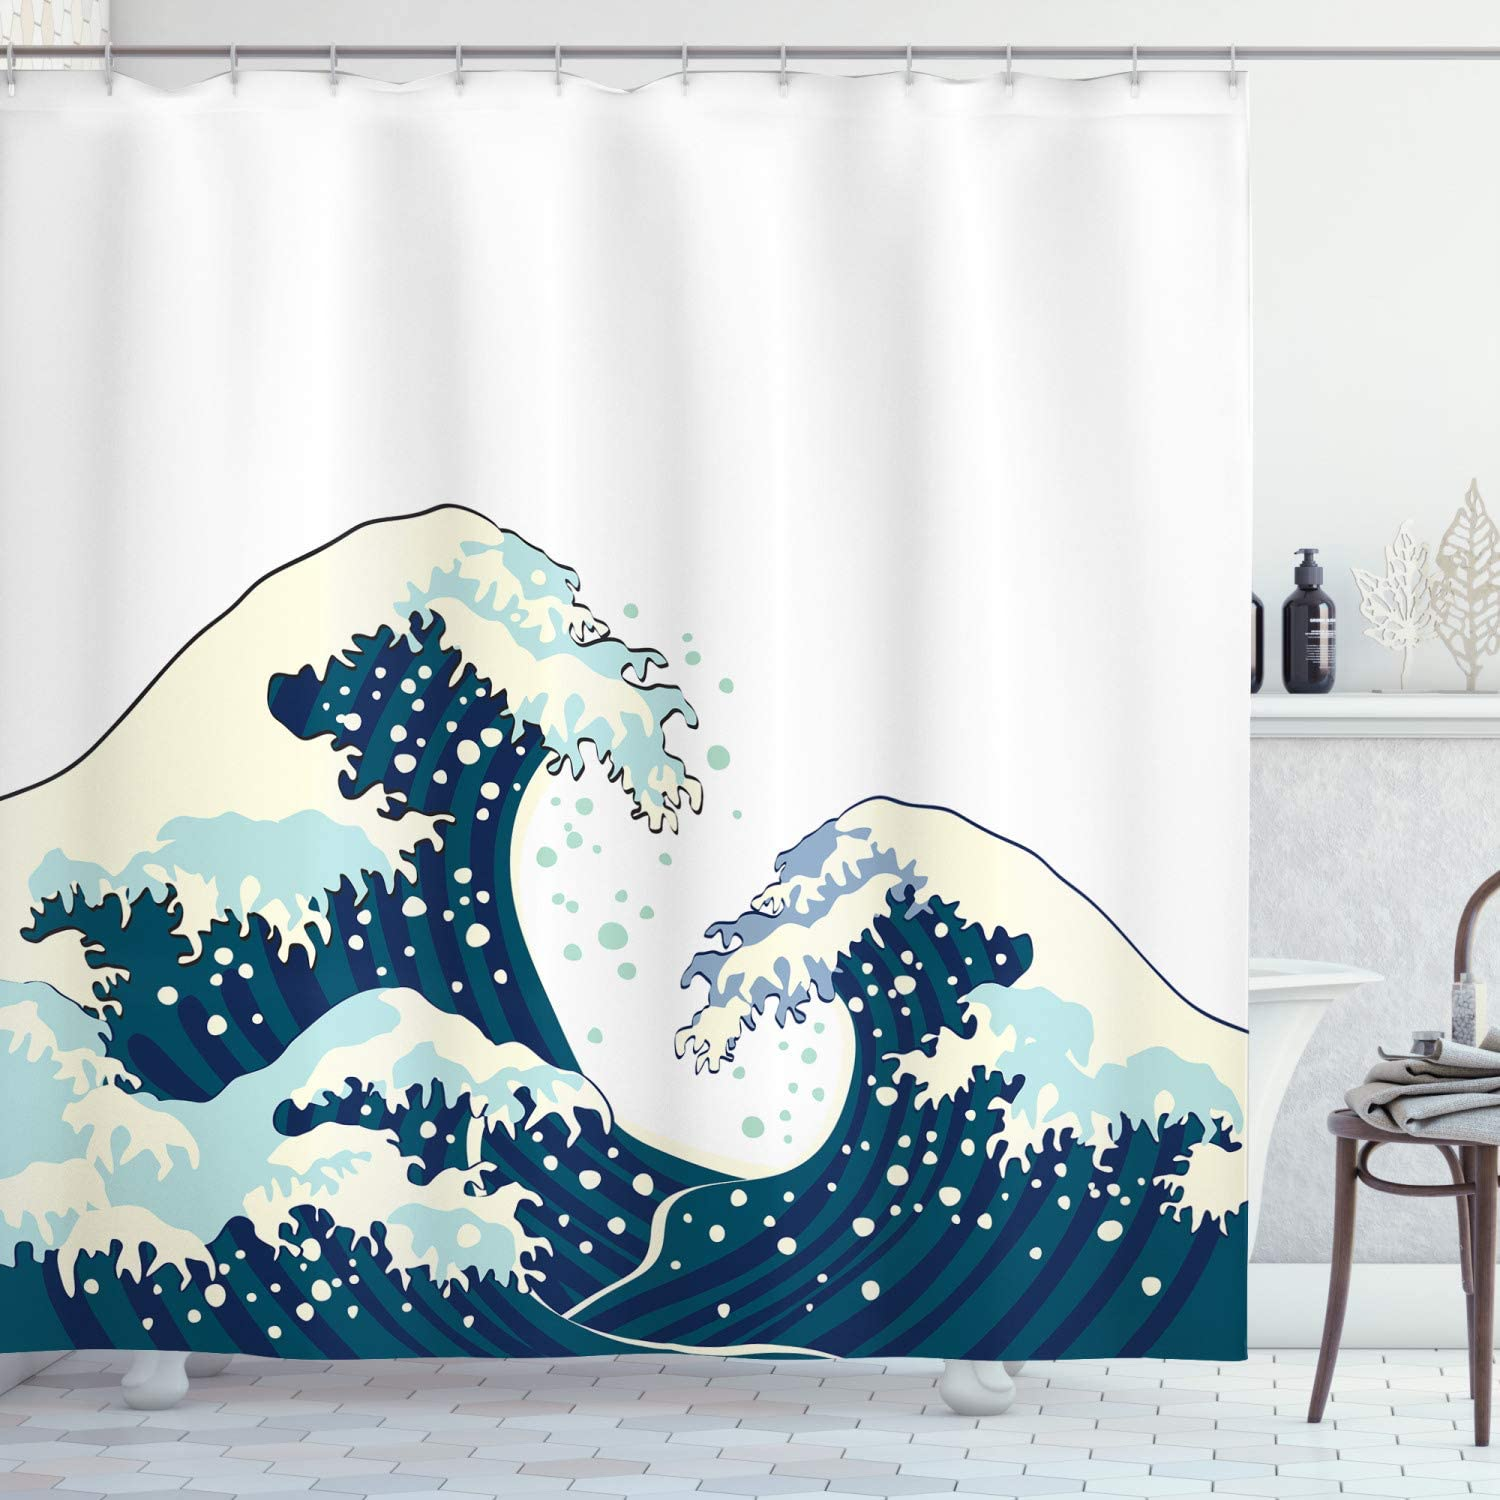 Oriental Vintage Great Wave Monochrome Kanagawa Inspired Antique Art Fabric Bathroom Decor Set with Hooks 70 inches Ambesonne Japanese Wave Shower Curtain Navy Blue